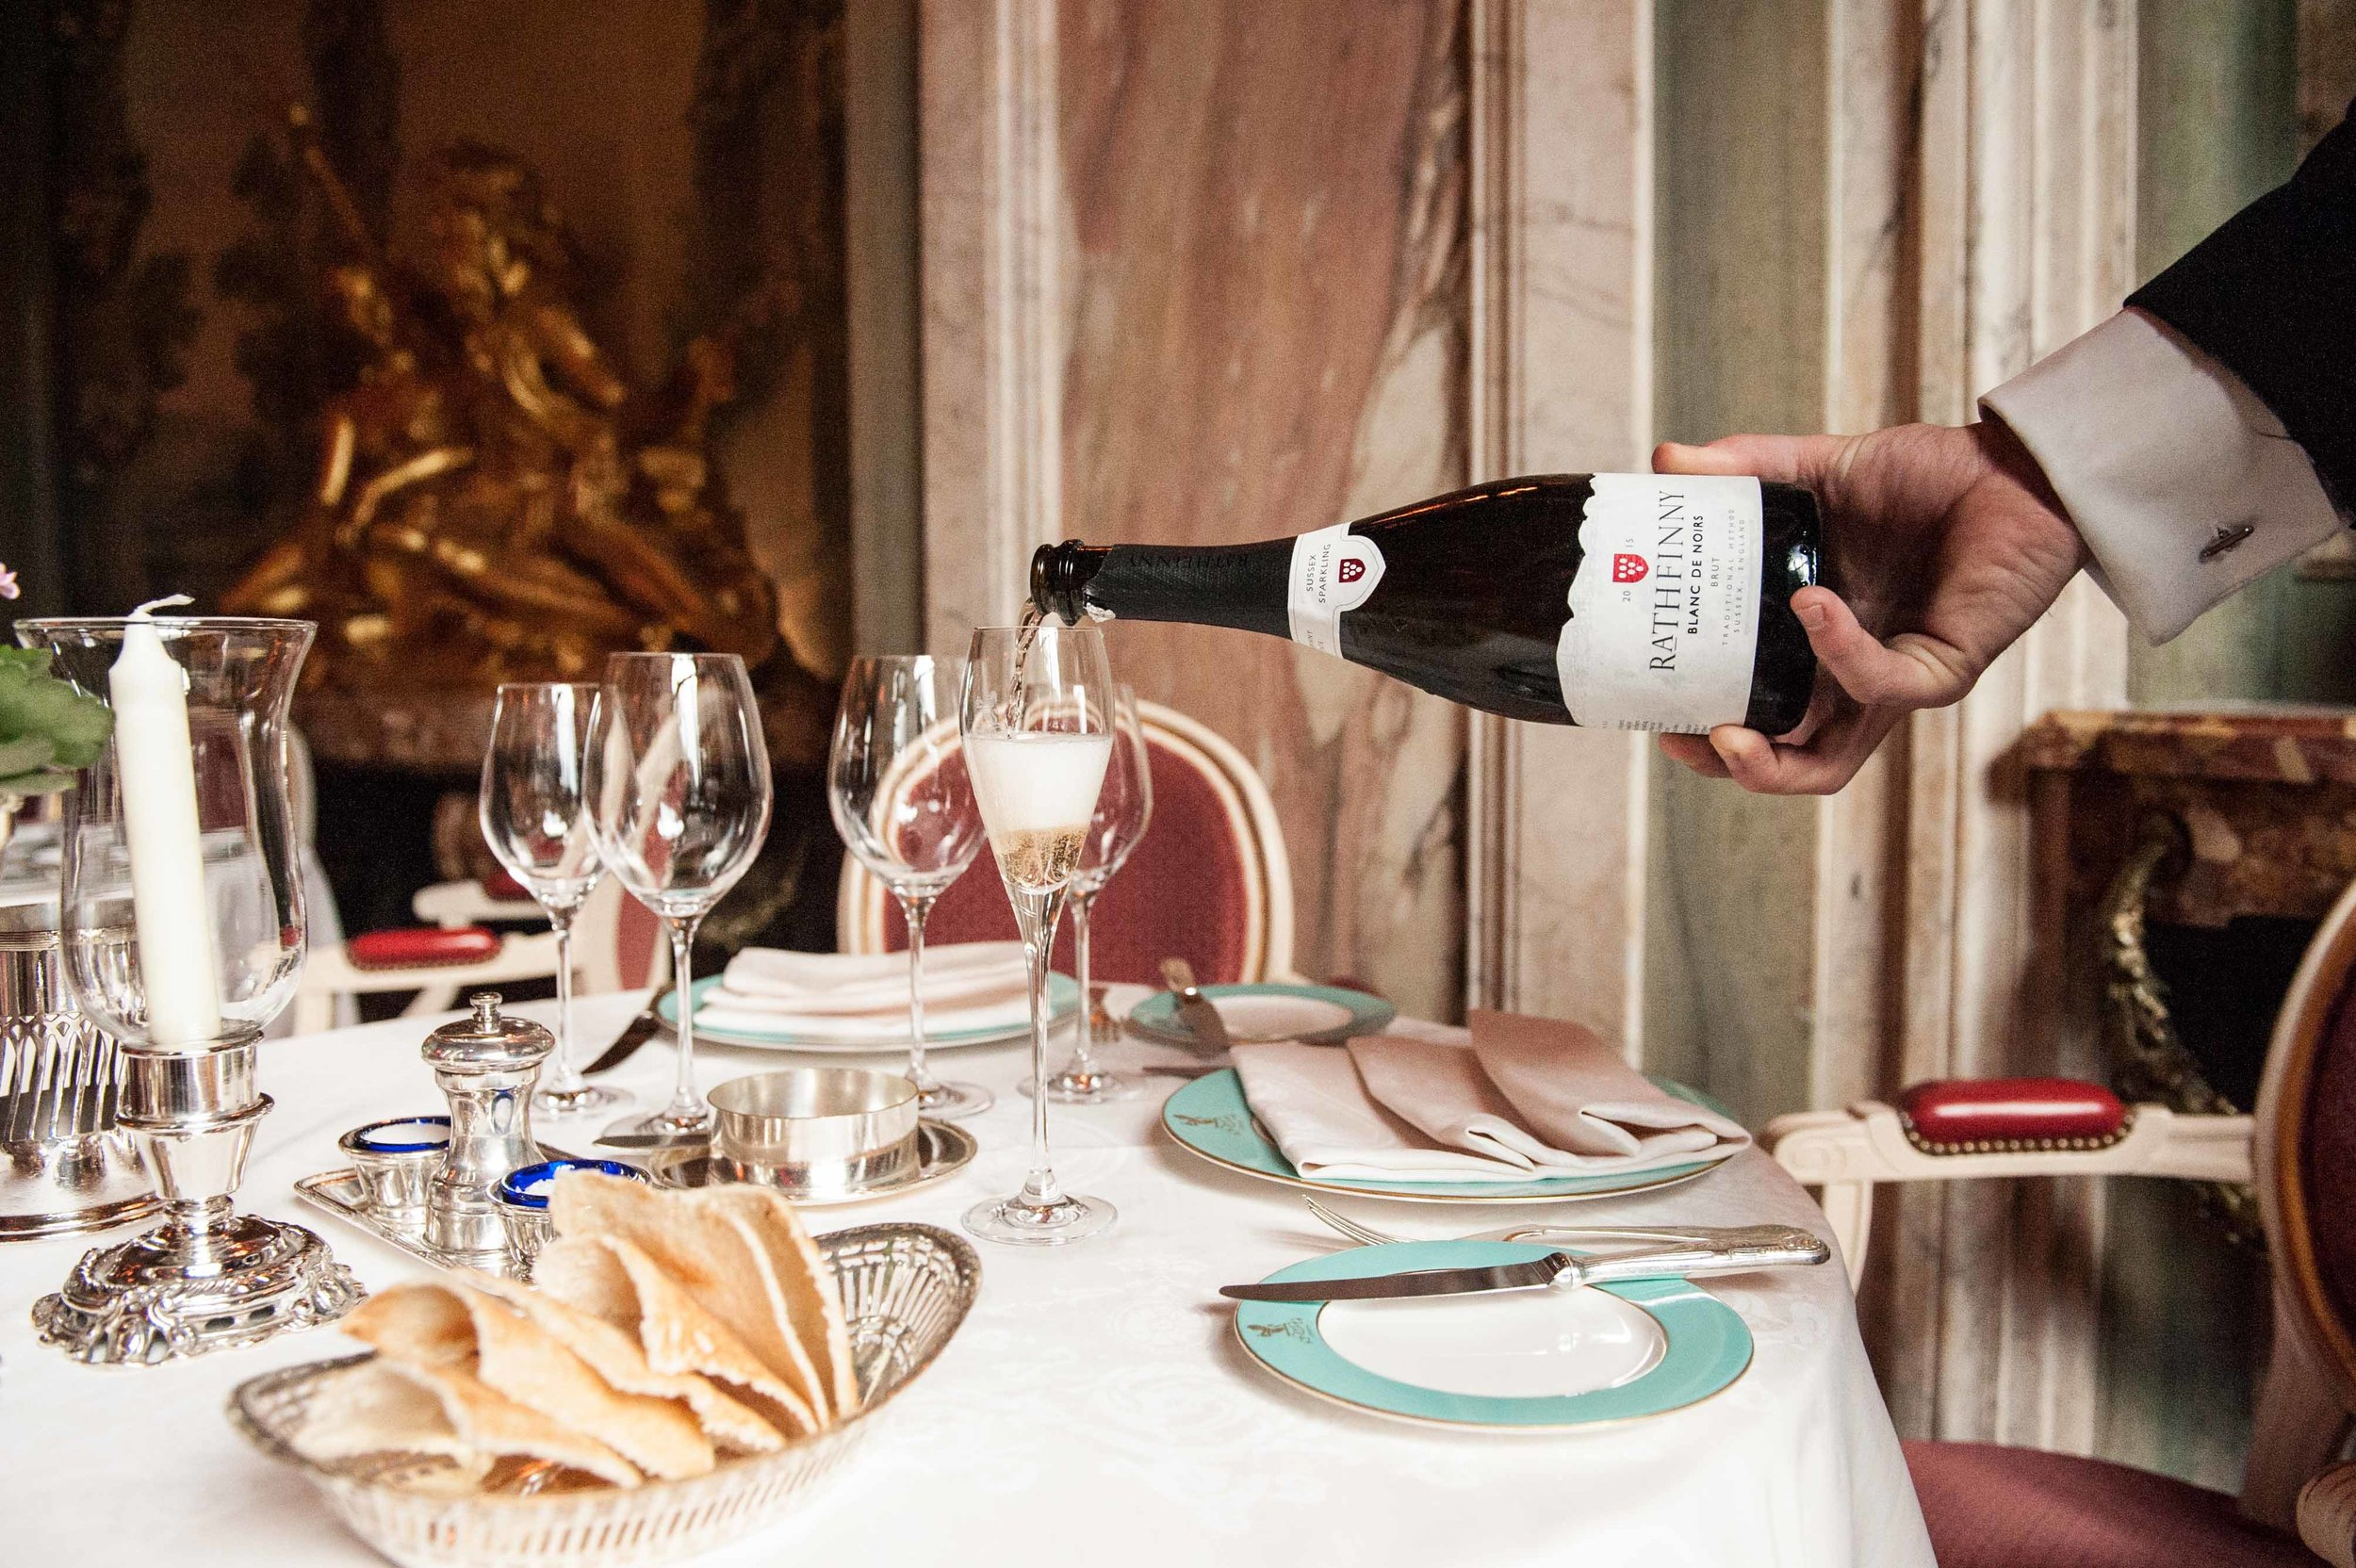 Rathfinny wine launch and celebration as May's Sparkling Wine of the Month at the Ritz London-114.jpg